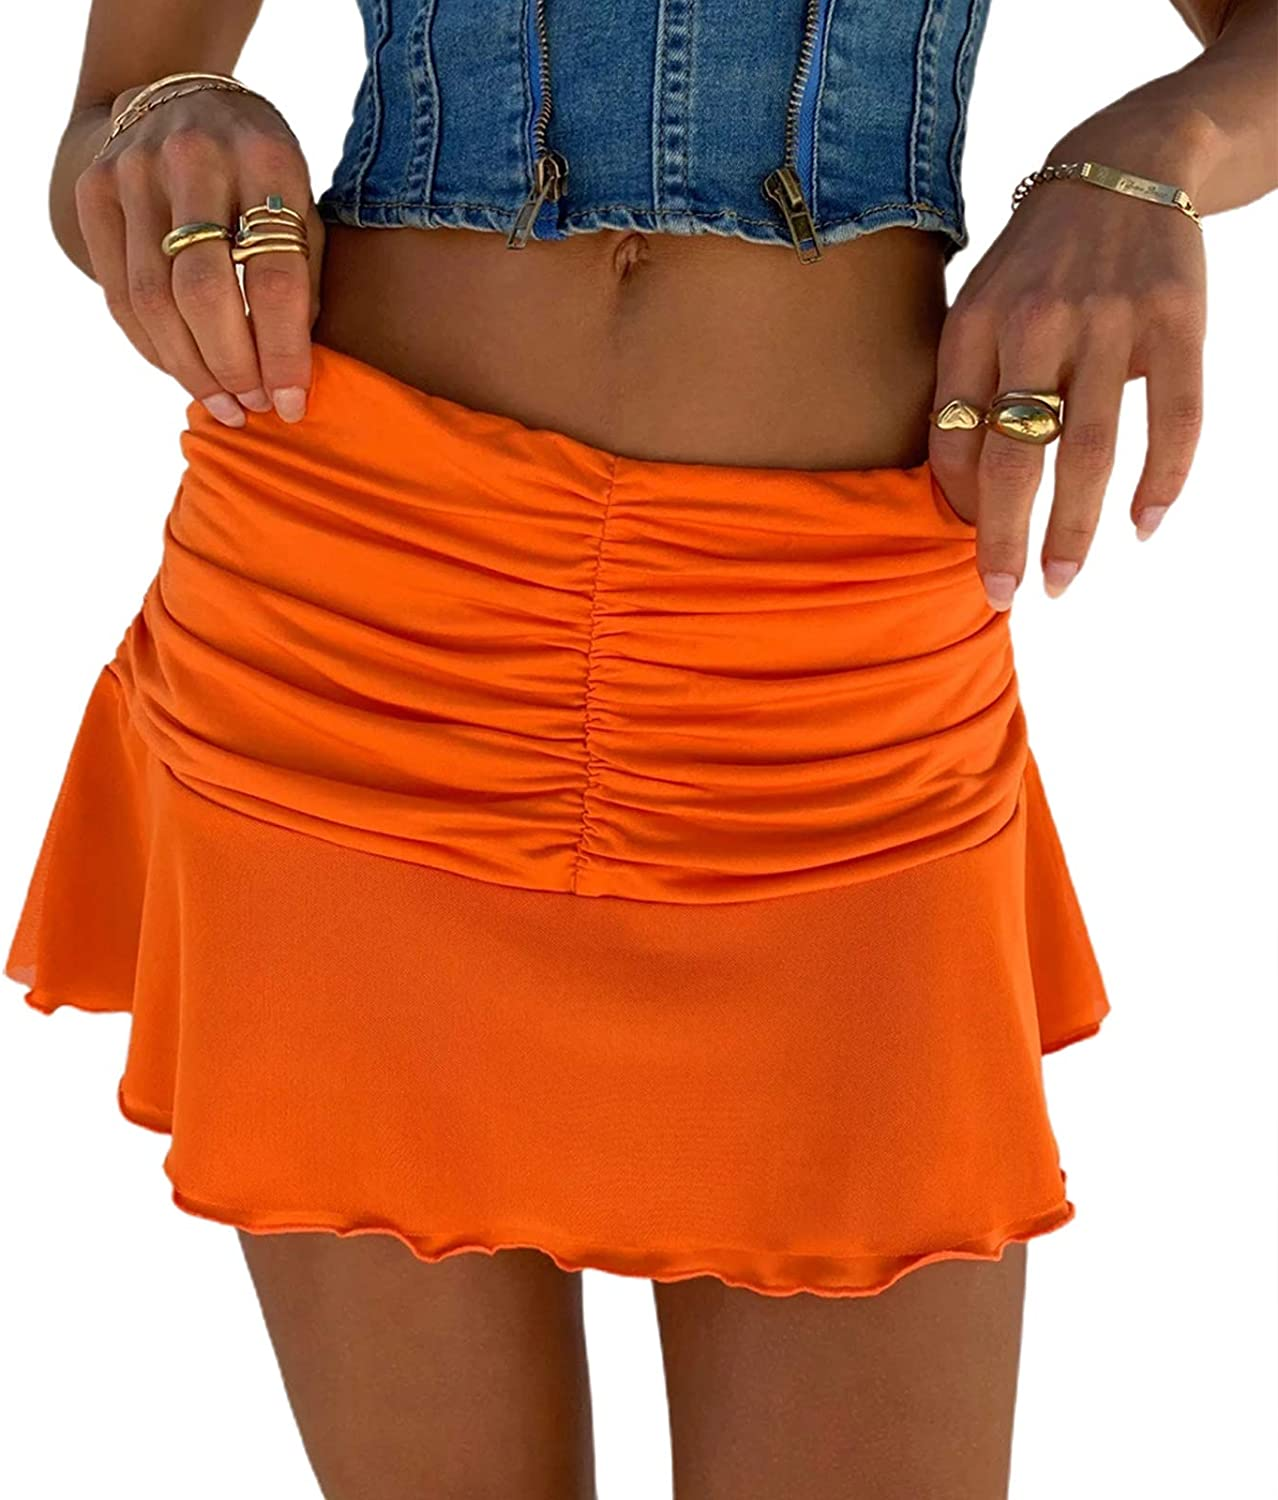 Women Y2K Casual A-line Pleated Skirts High Waist Casual Short Skirts Solid Color Lady Wave Mini Skirts Summer Beachwear